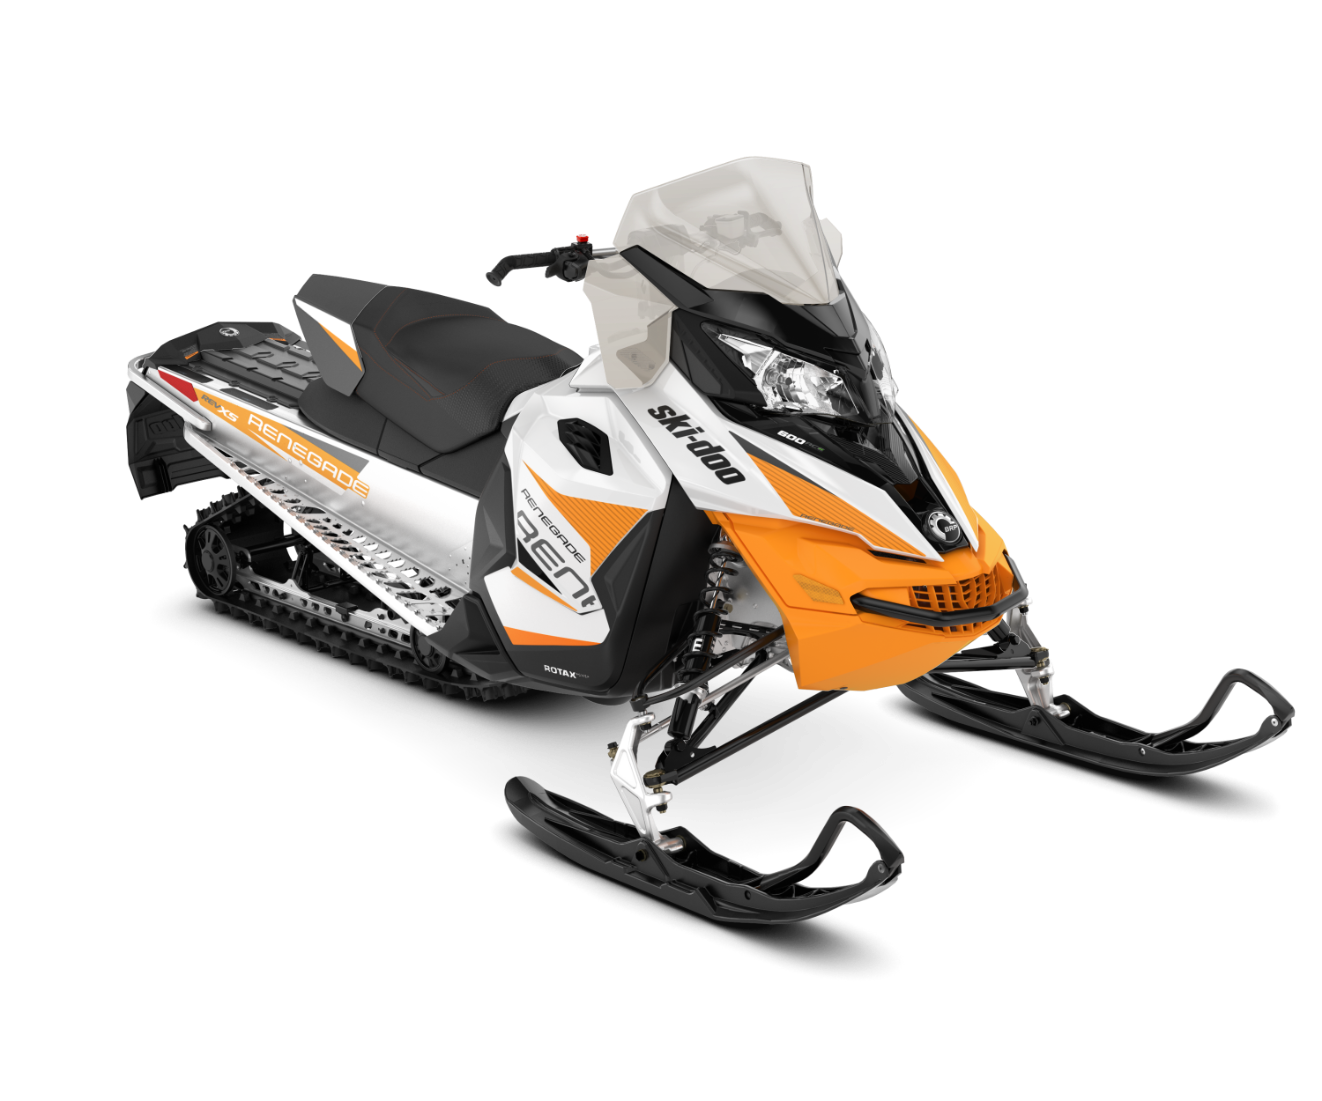 2019 Ski-Doo Renegade Sport 600 ACE in Pendleton, New York